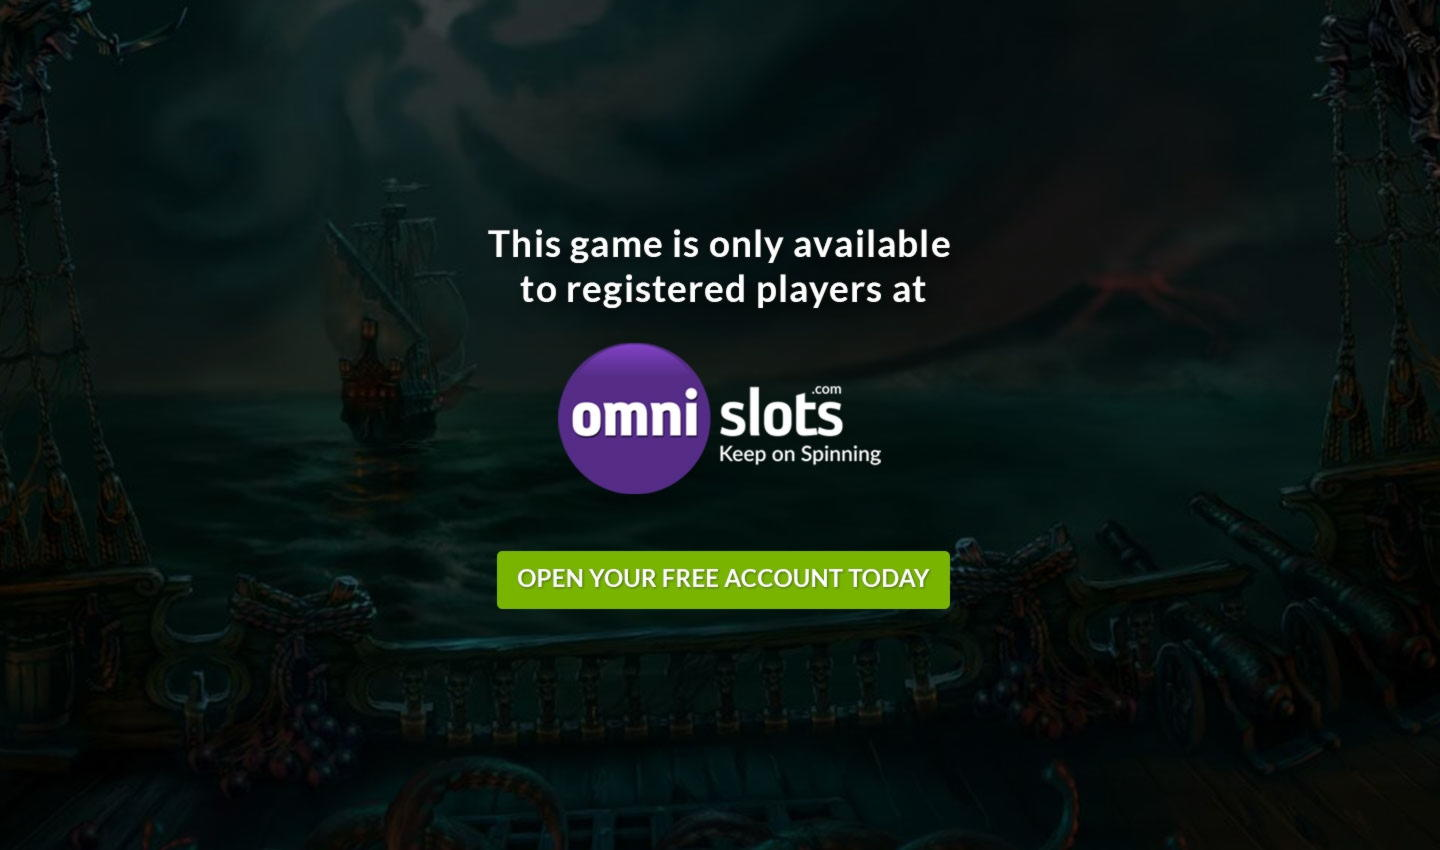 295 Free Spins at Ignition Casino